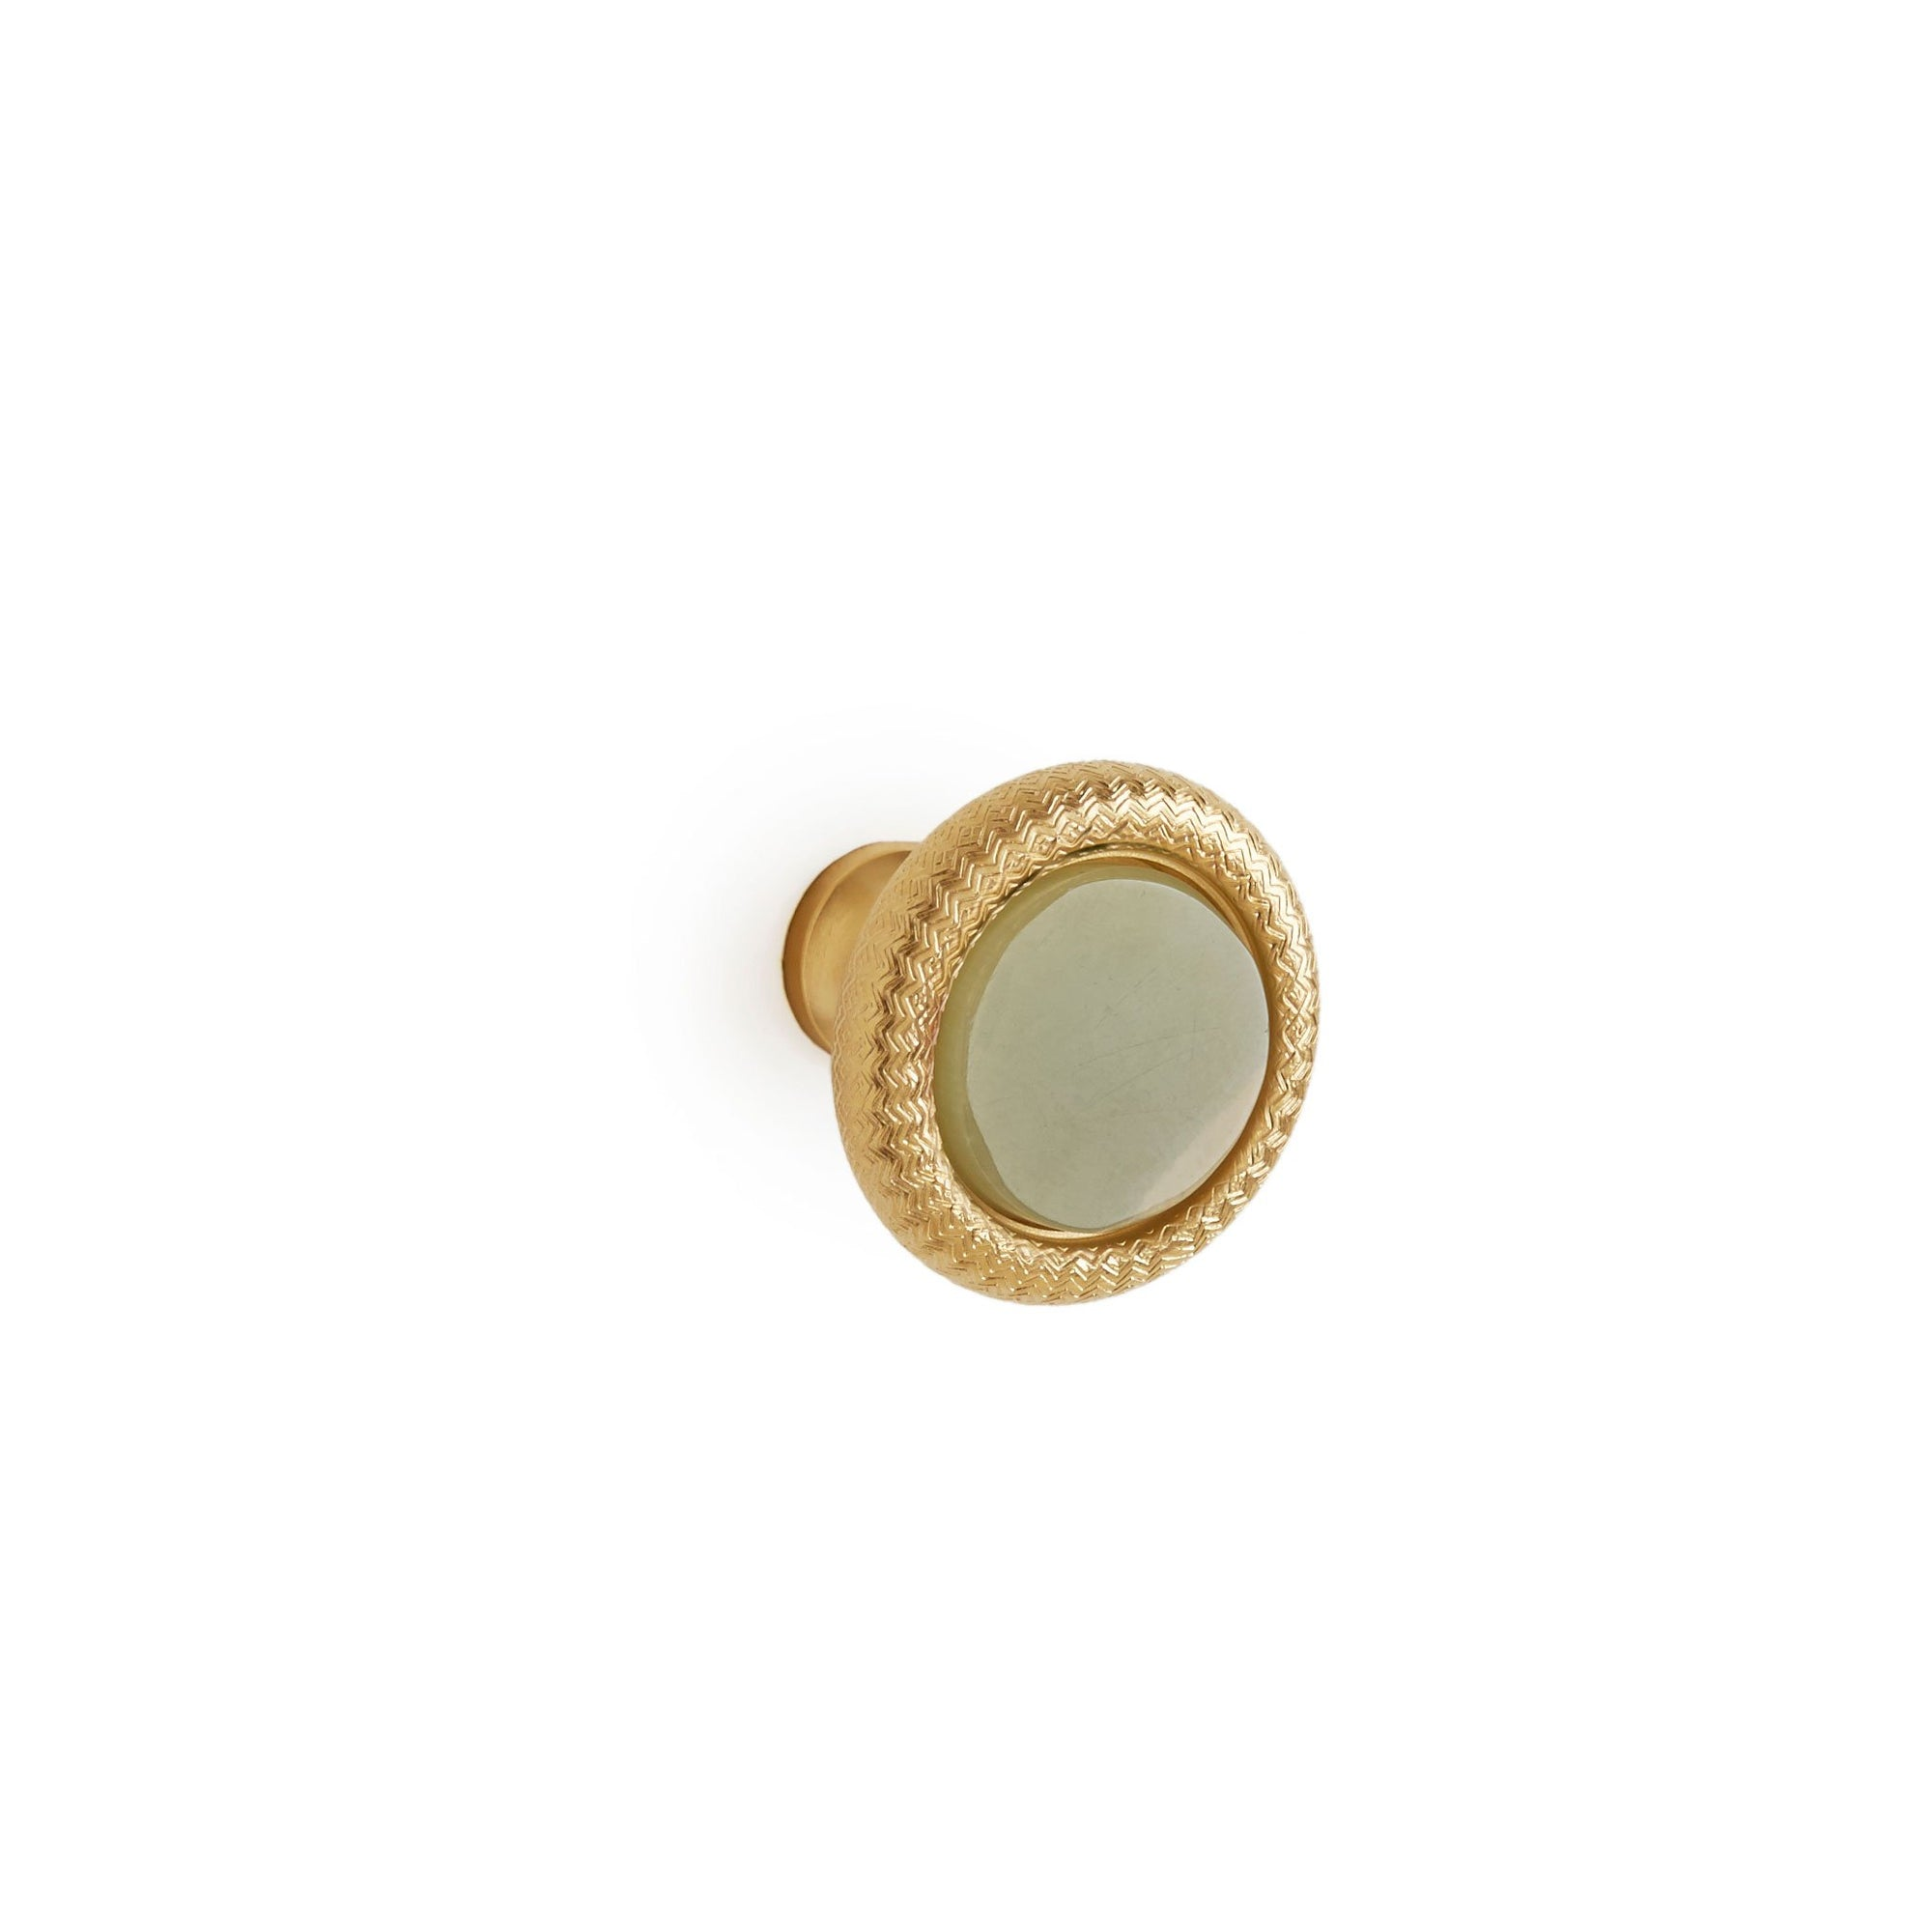 1034-11/4-GROX-GP Sherle Wagner International Semiprecious Green Onyx Knurled Cabinet & Drawer Knob in Gold Plate metal finish